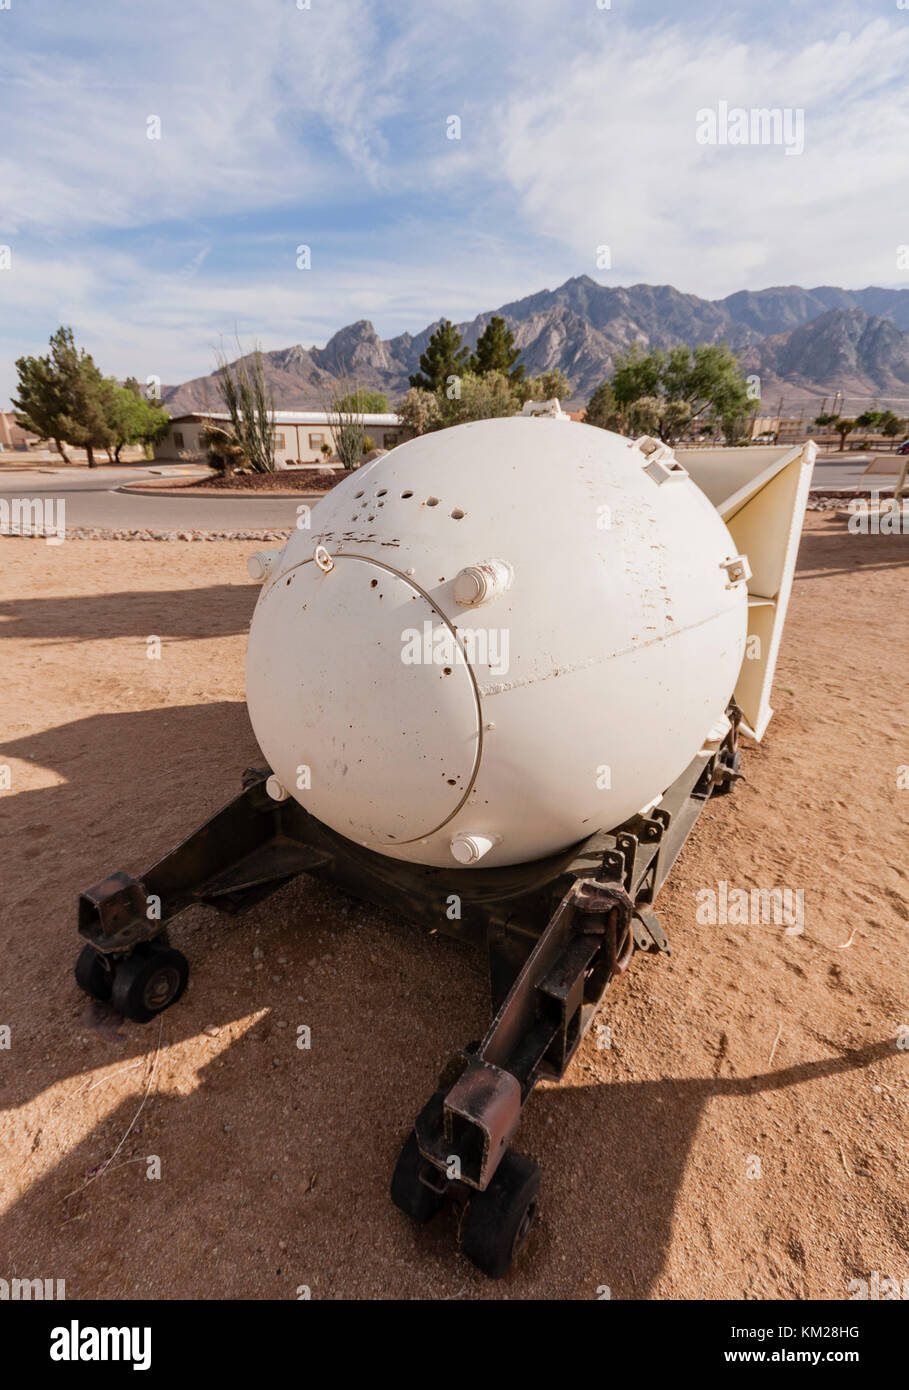 Fat Man atomic bomb on display at White Sands Missile Range, New Mexico, USA - Stock Image